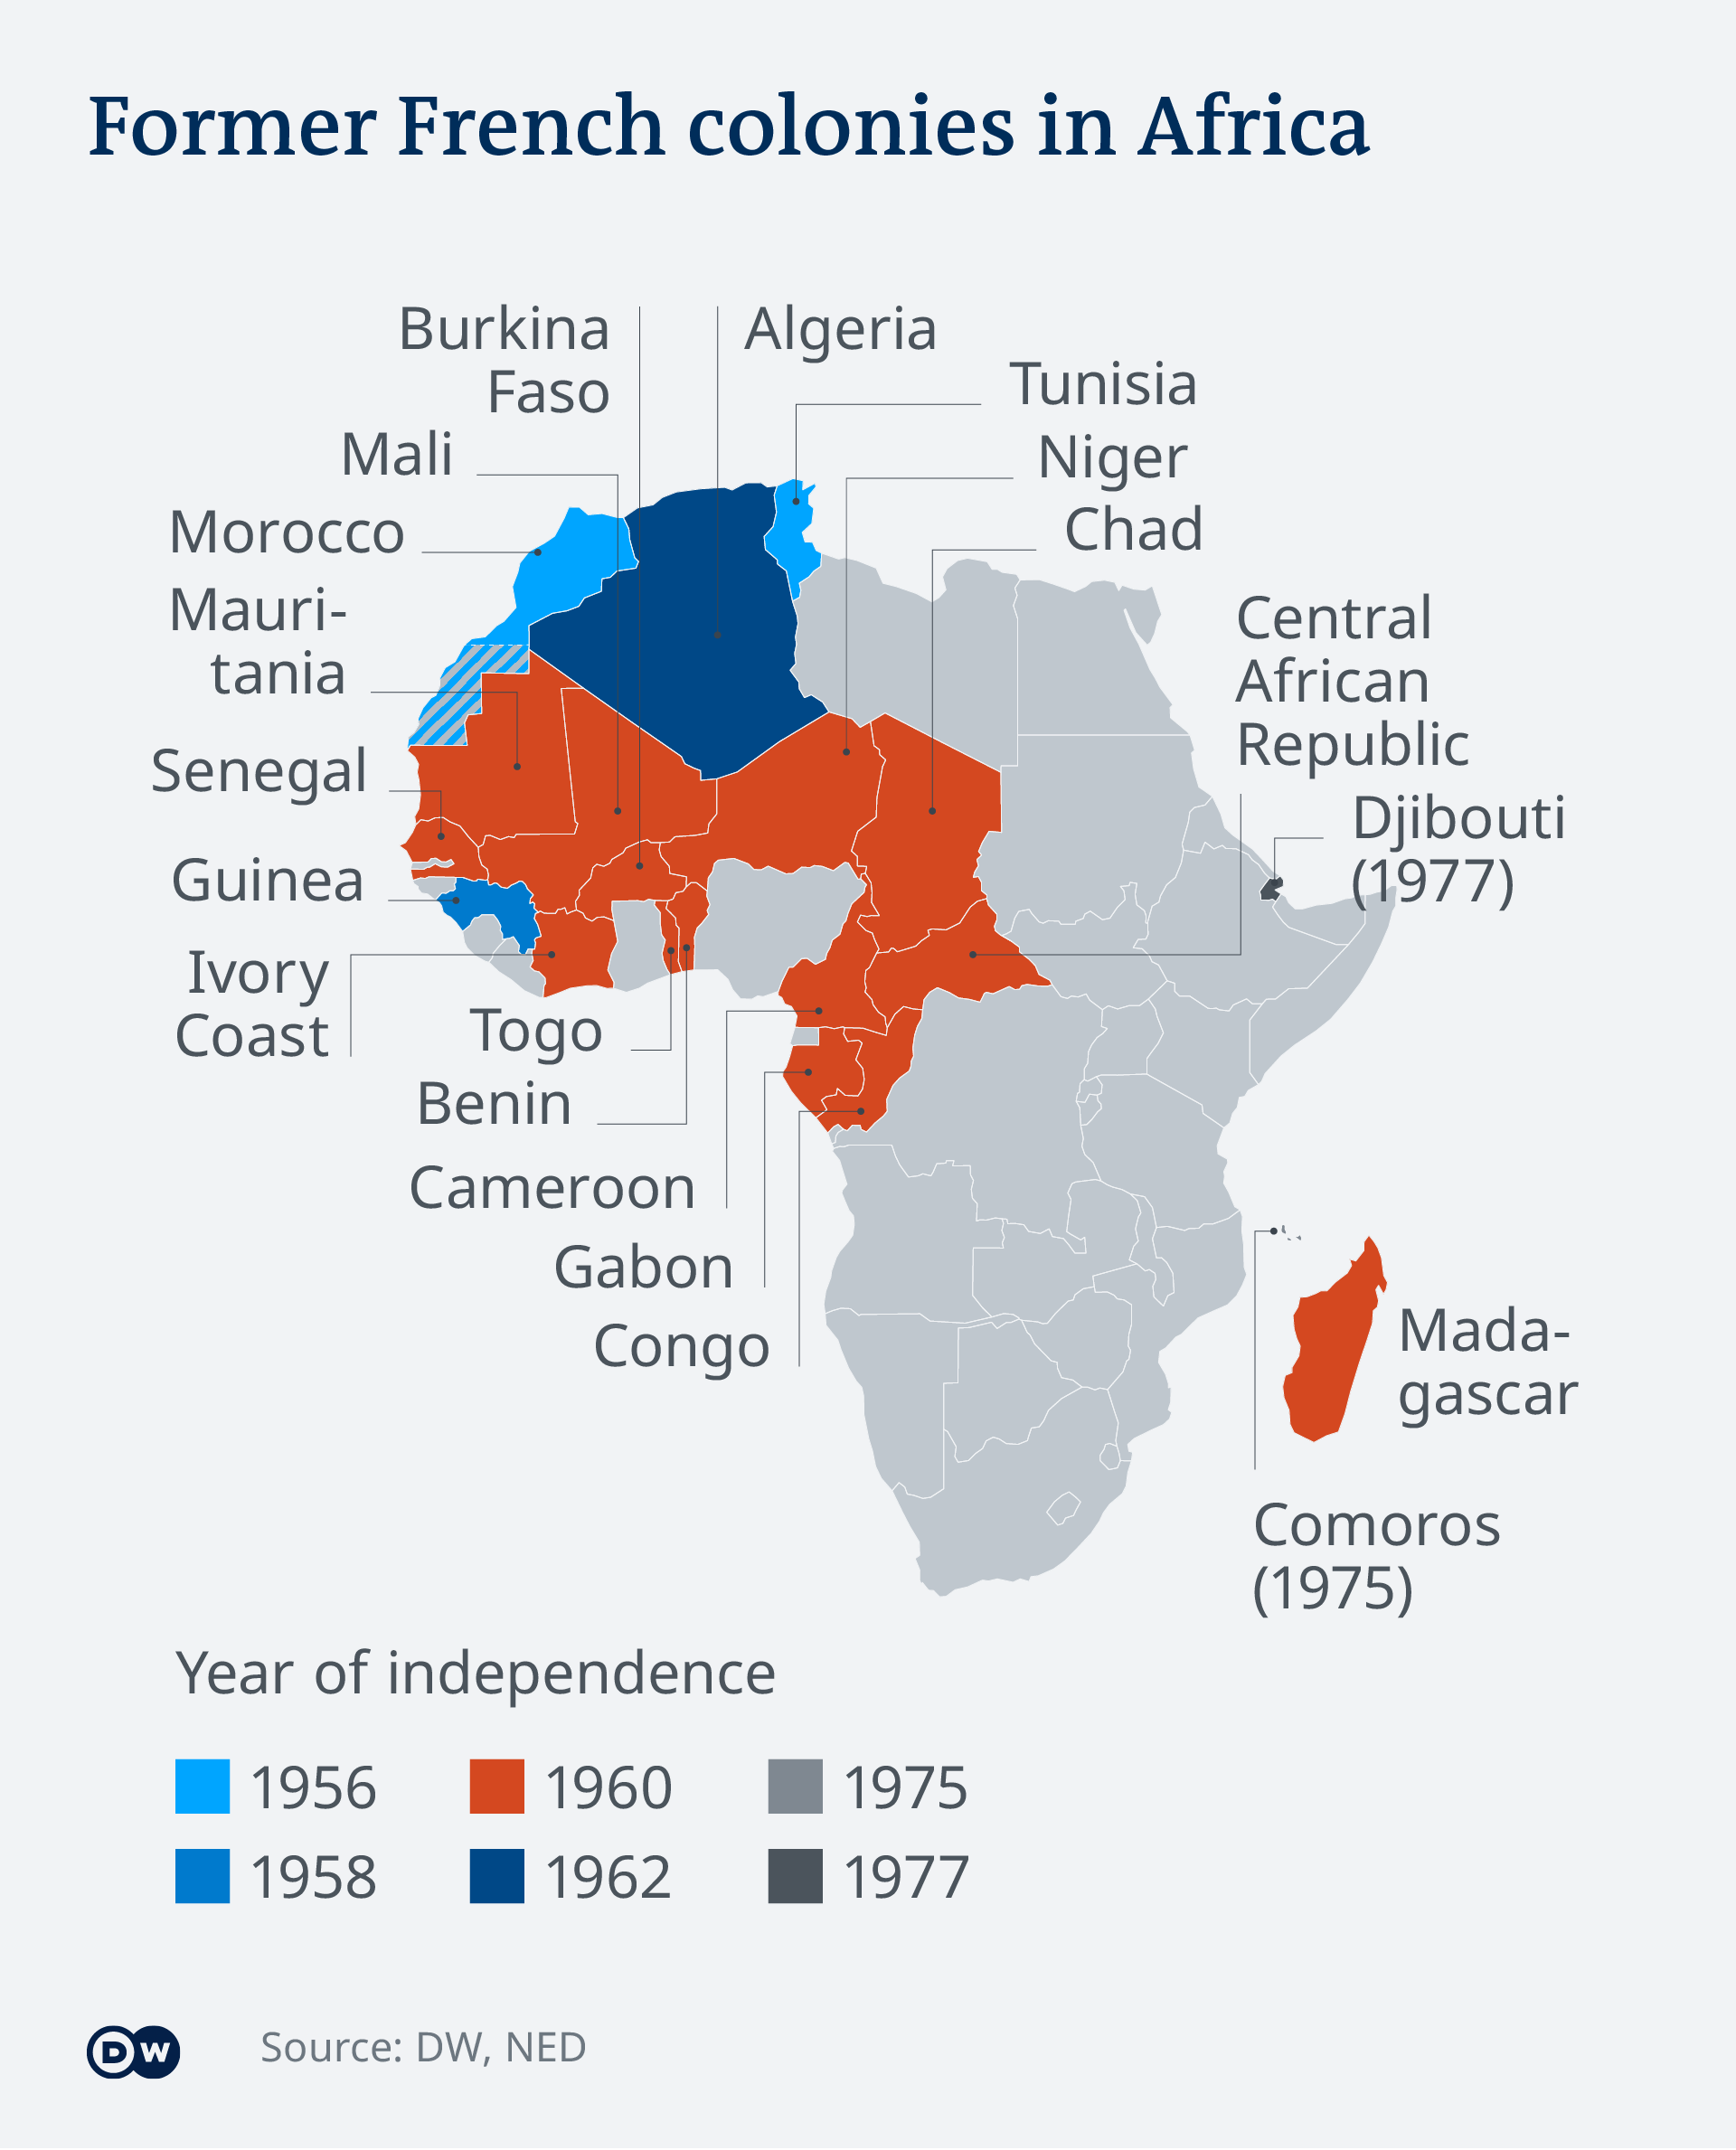 Infographic showing former French colonies in Africa